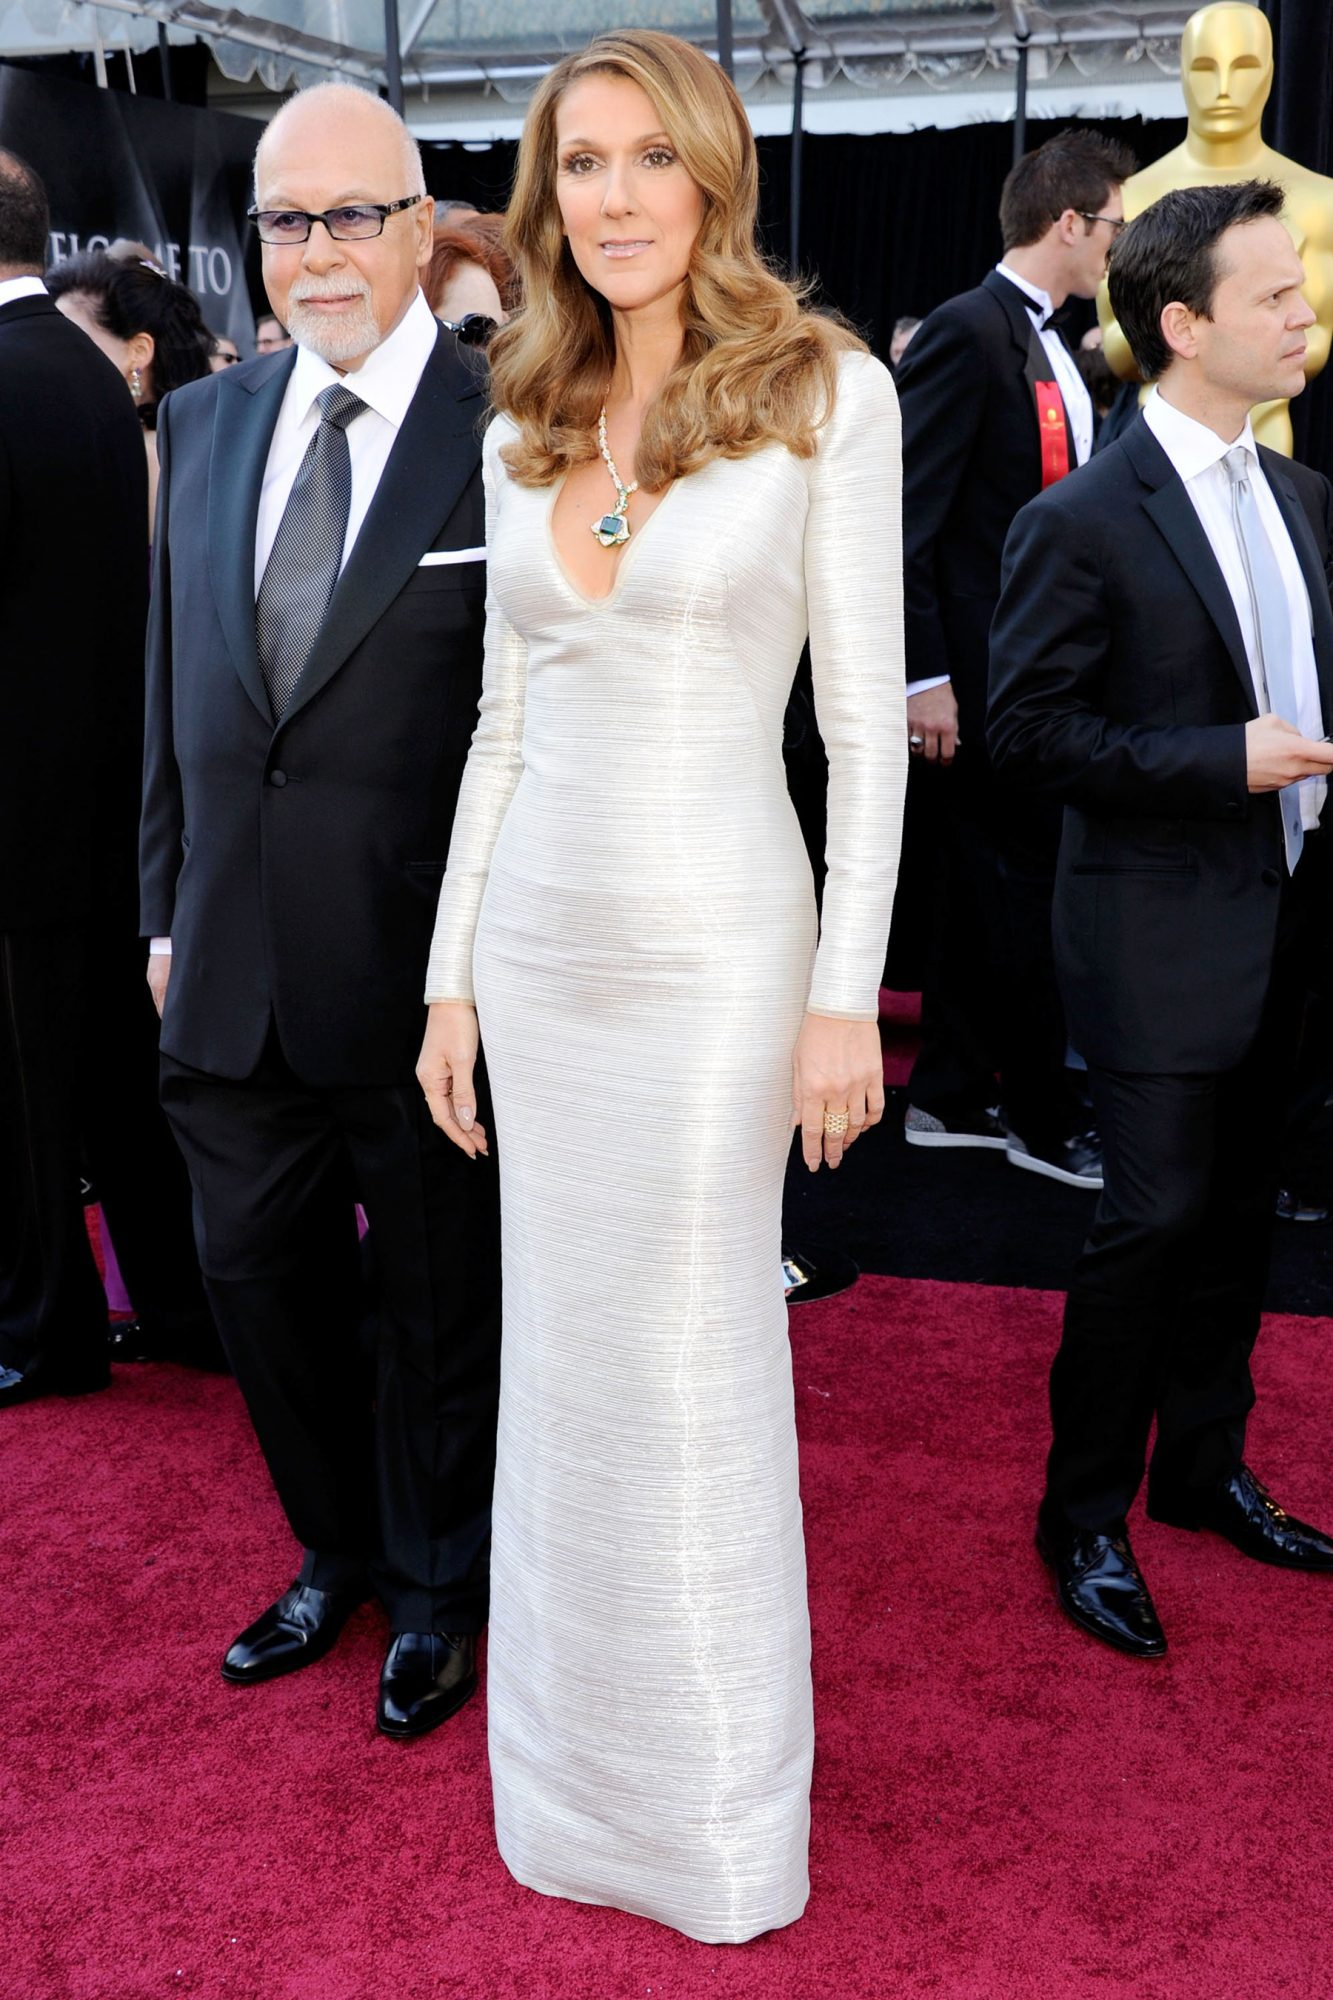 83rd Annual Academy Awards - People Magazine Arrivals